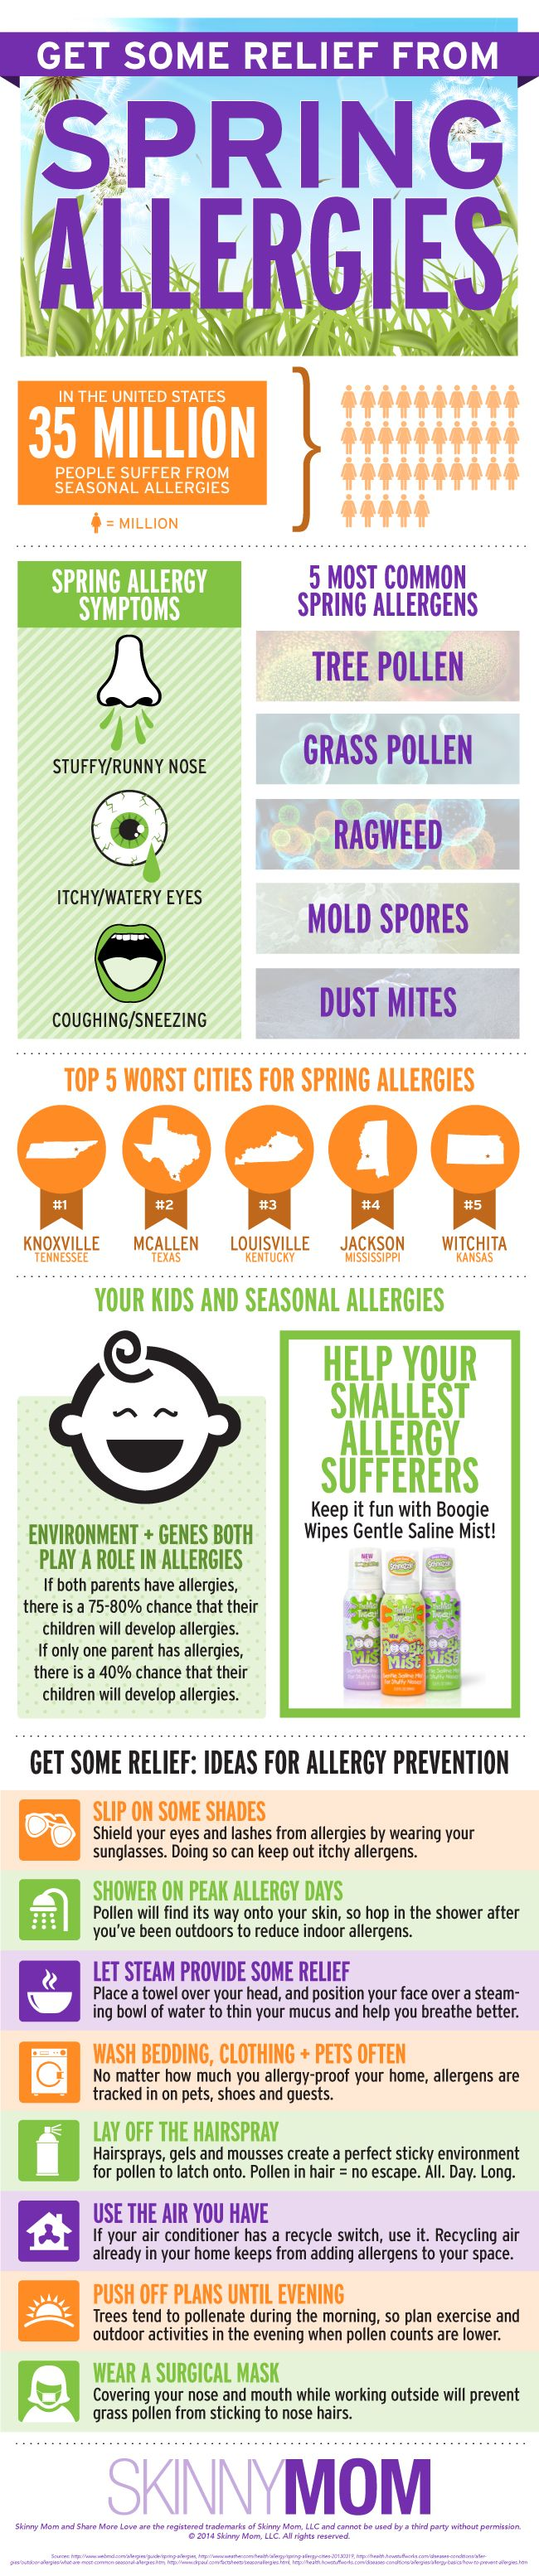 Get some relief from spring allergies infographic // Skinny Mom Blog